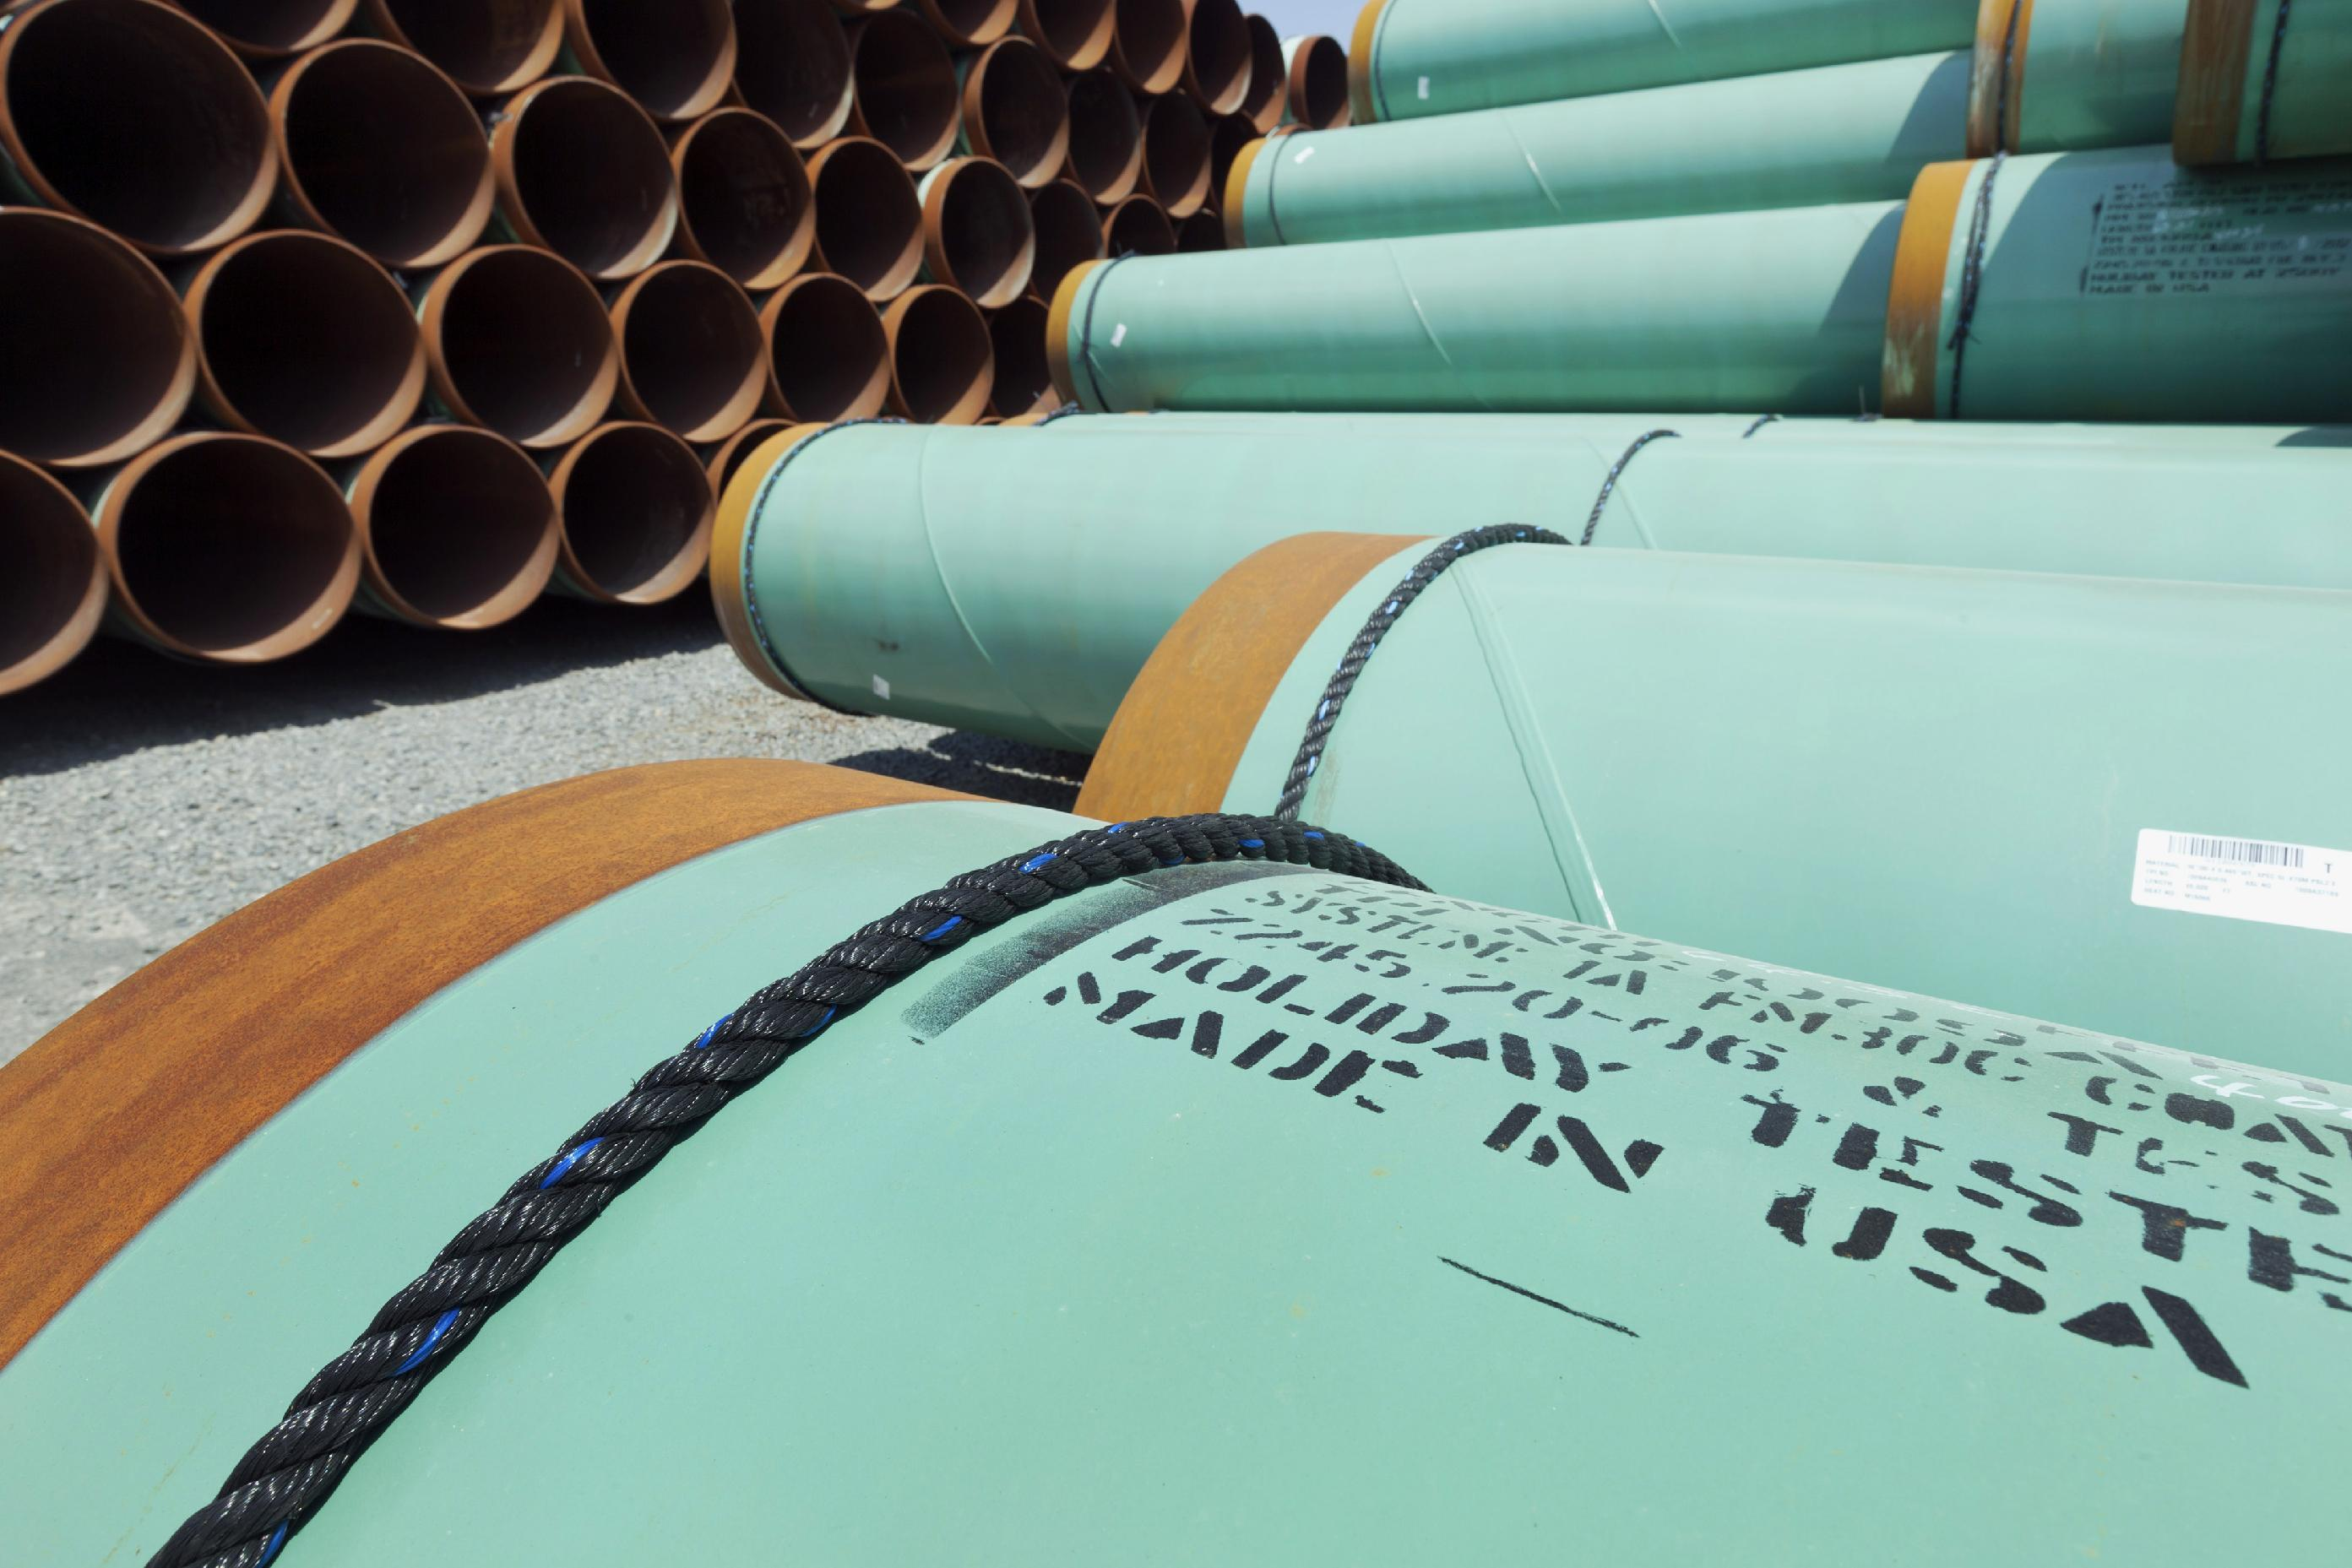 Delay won't quell 2014 wrangling over Keystone XL